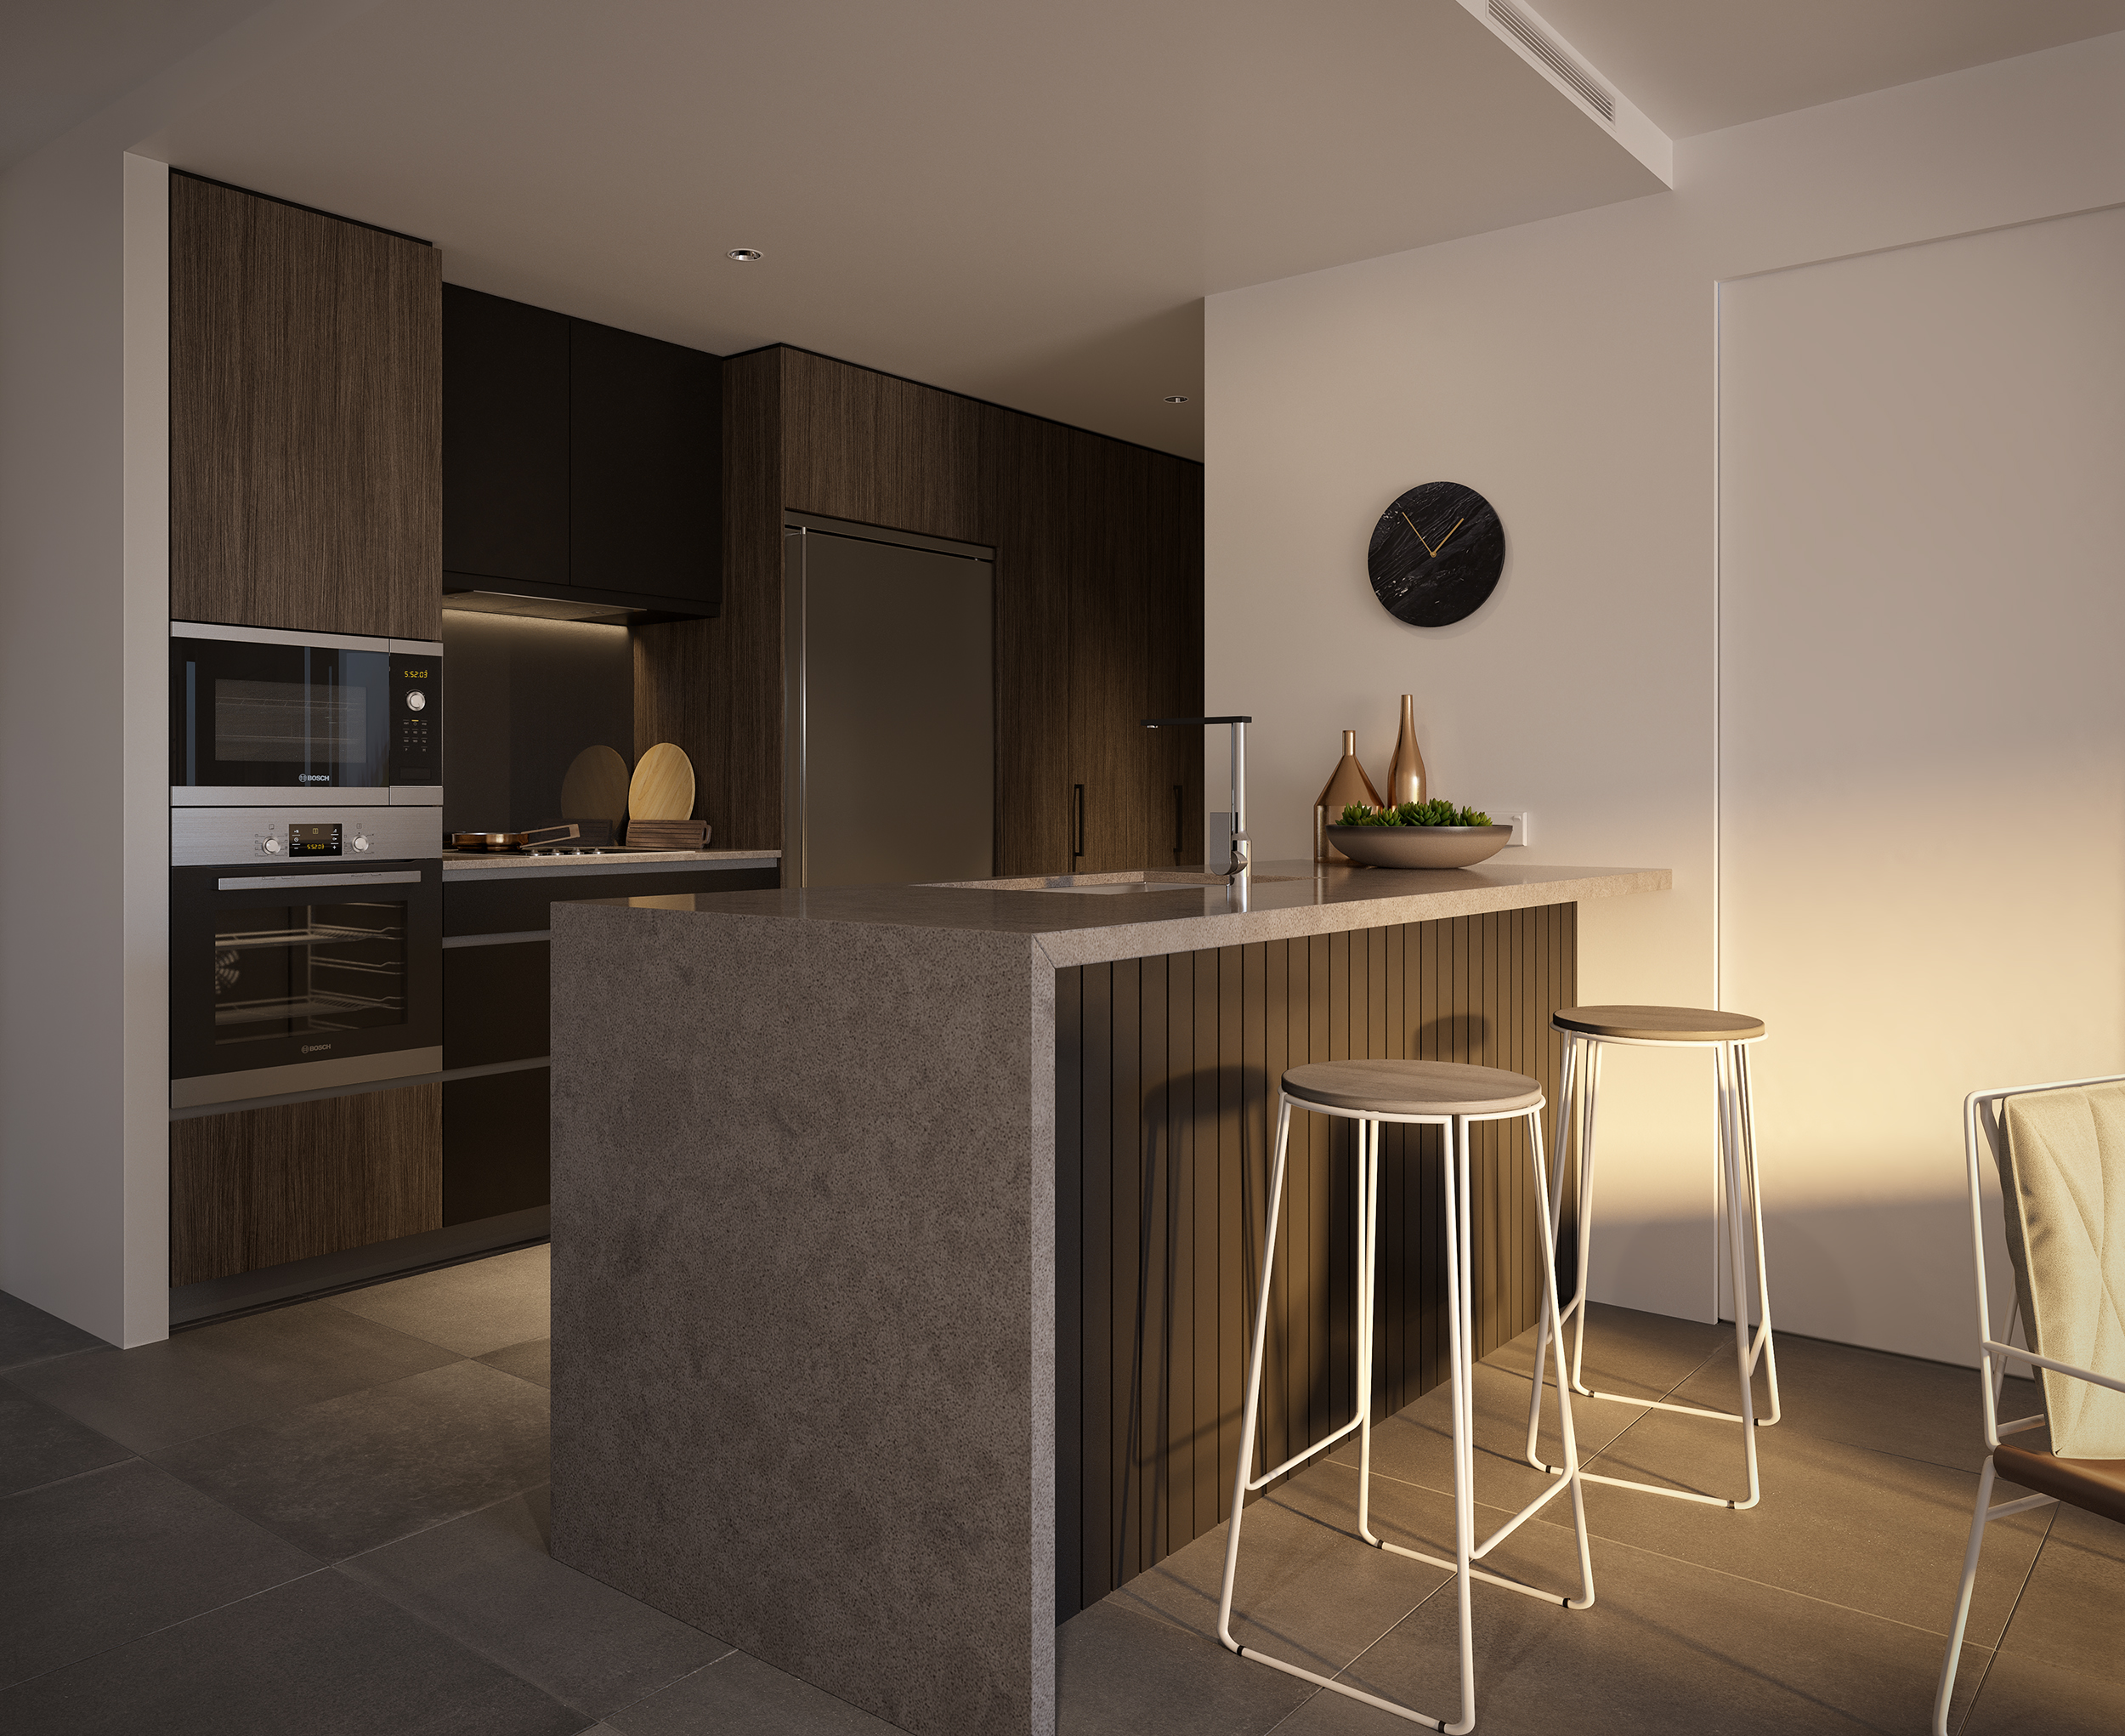 Zillah St_Kitchen_Unit1A_Dark_Final 2500.jpg